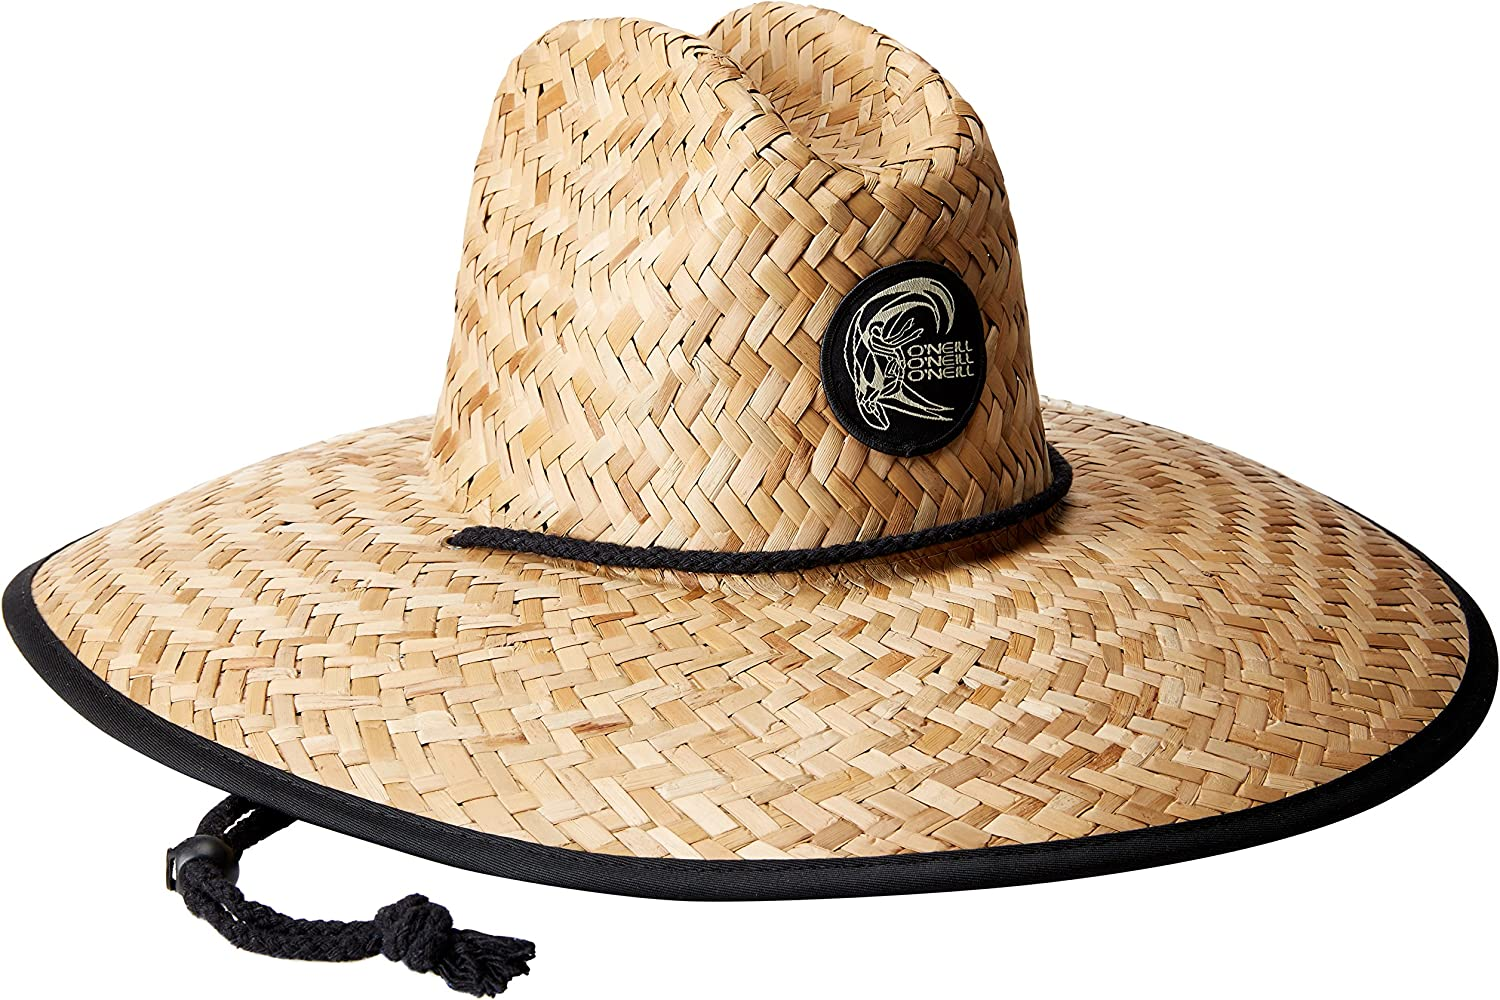 O'NEILL Men's Sonoma Print Straw Hat : Clothing, Shoes & Jewelry